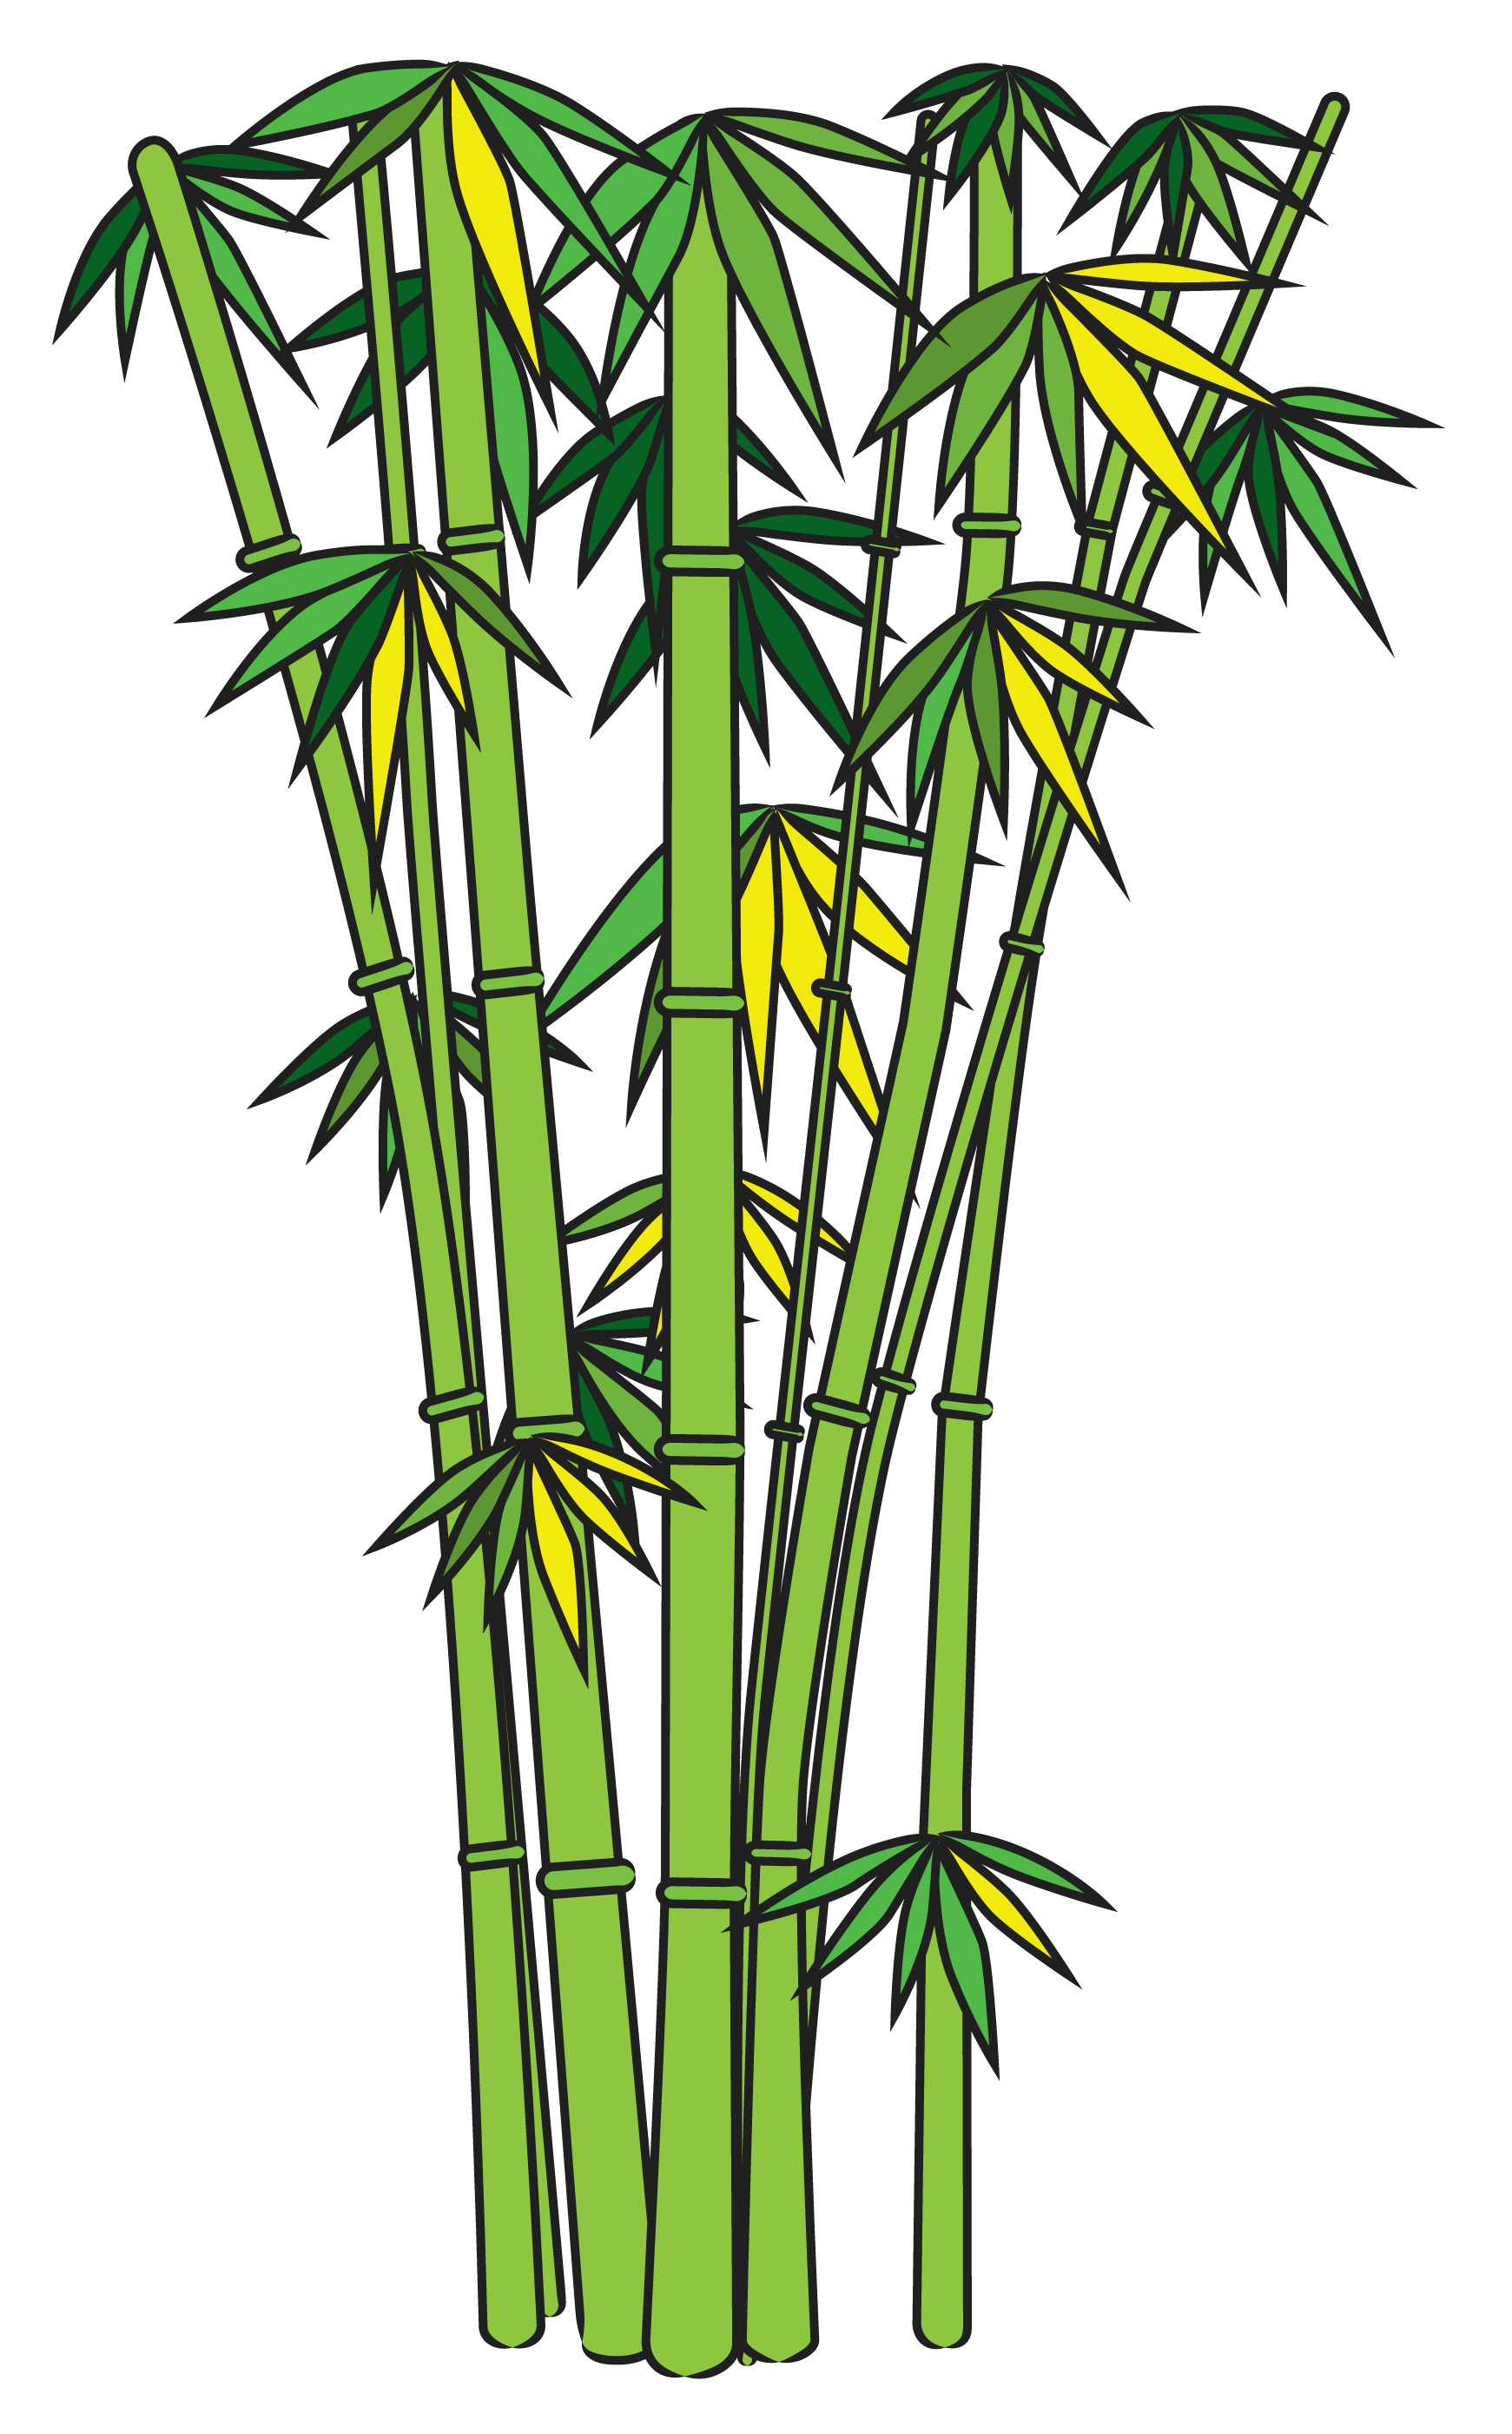 Drawn bamboo forest plant #12